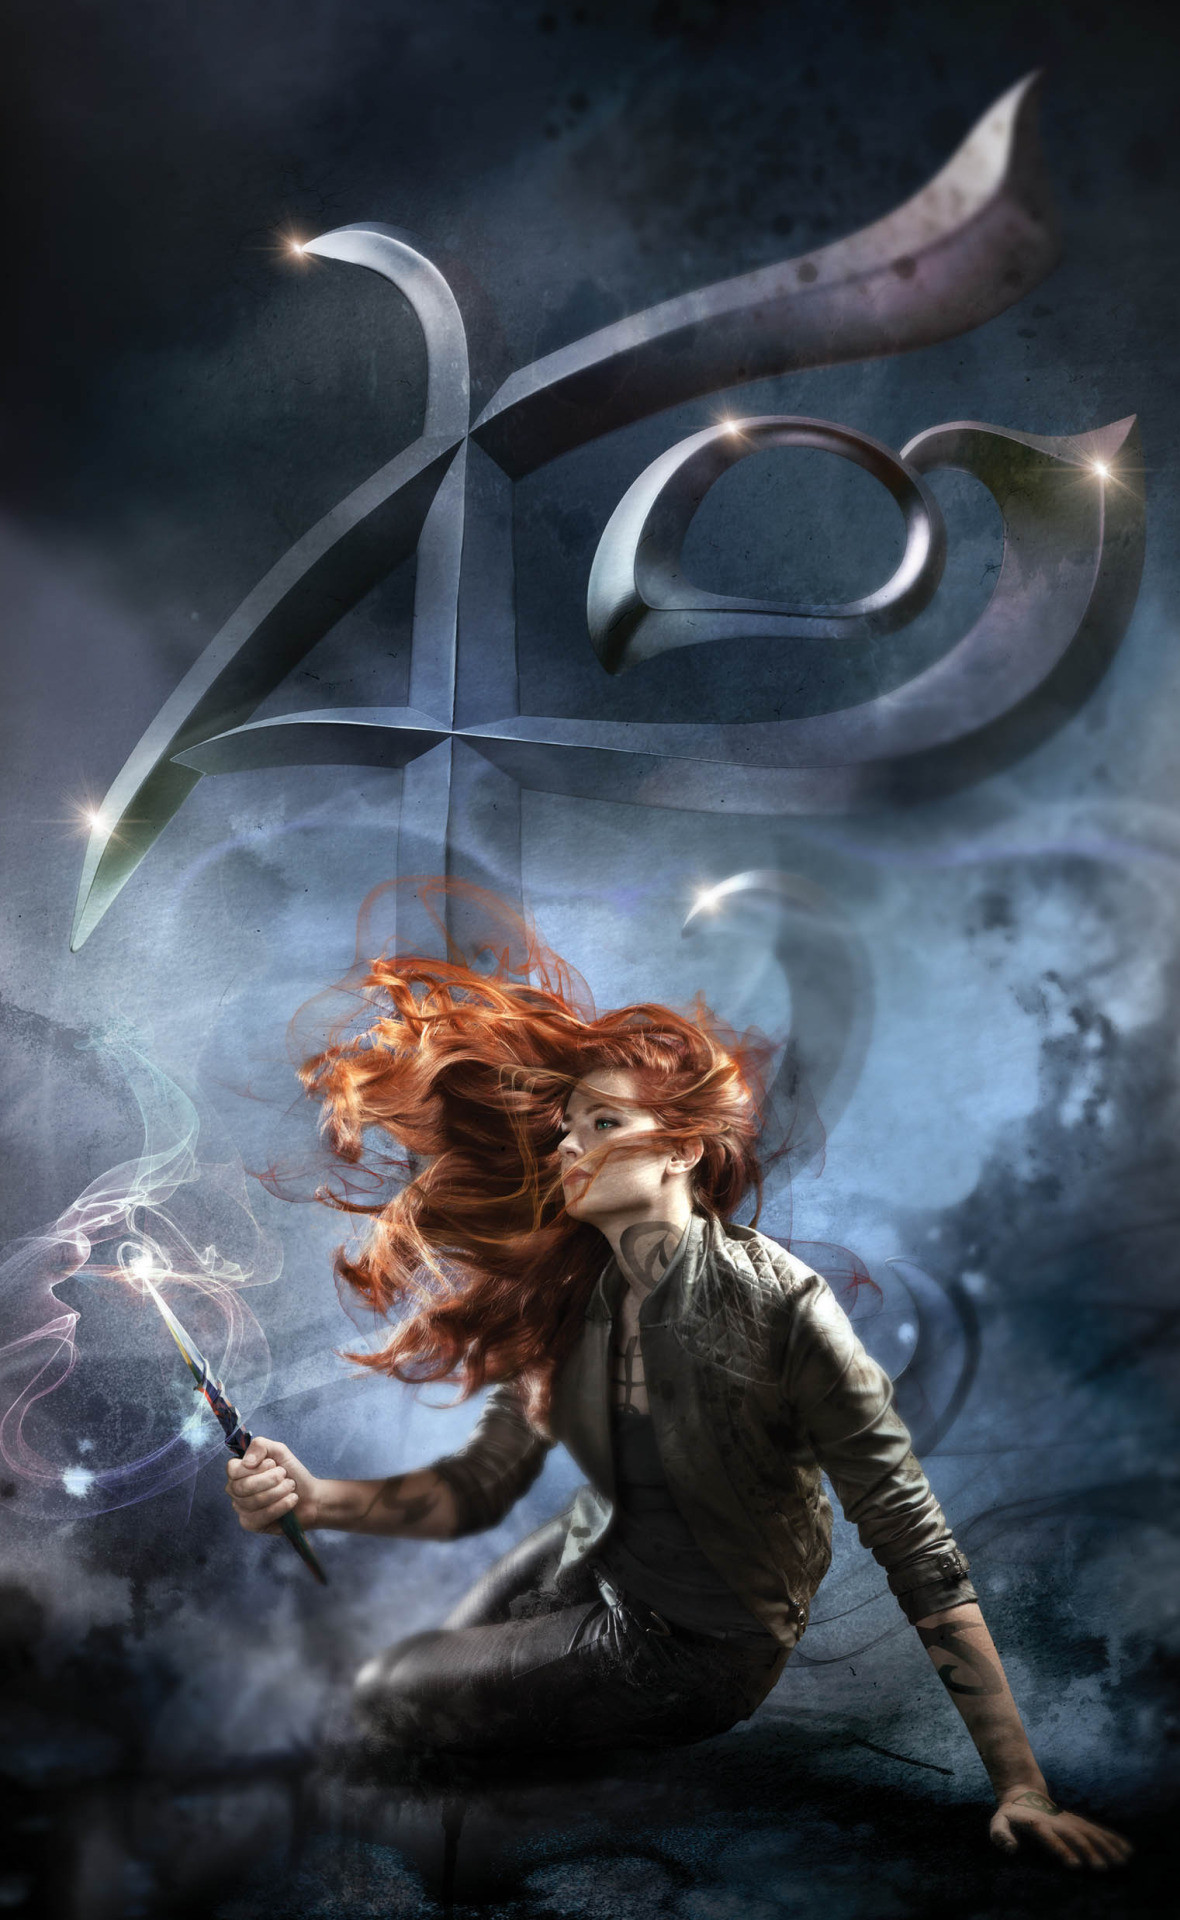 1180x1920 Clary - City of Ashes (Shadowhunters, The Mortal Instruments, book two) by  Cassandra Clare, special edition cover